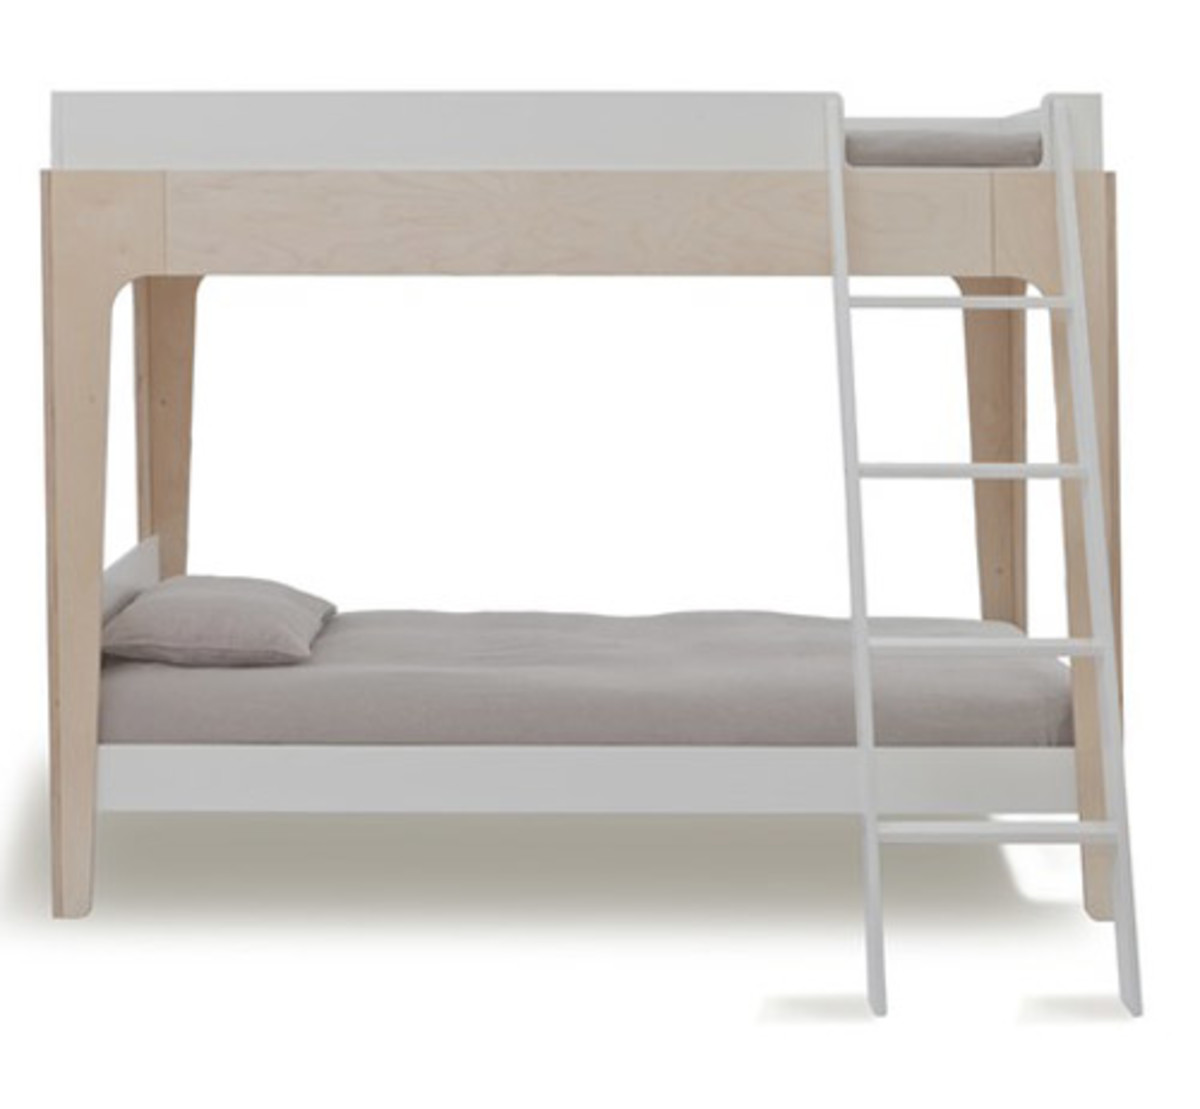 The Best Kids Beds for d Bedrooms for Kids